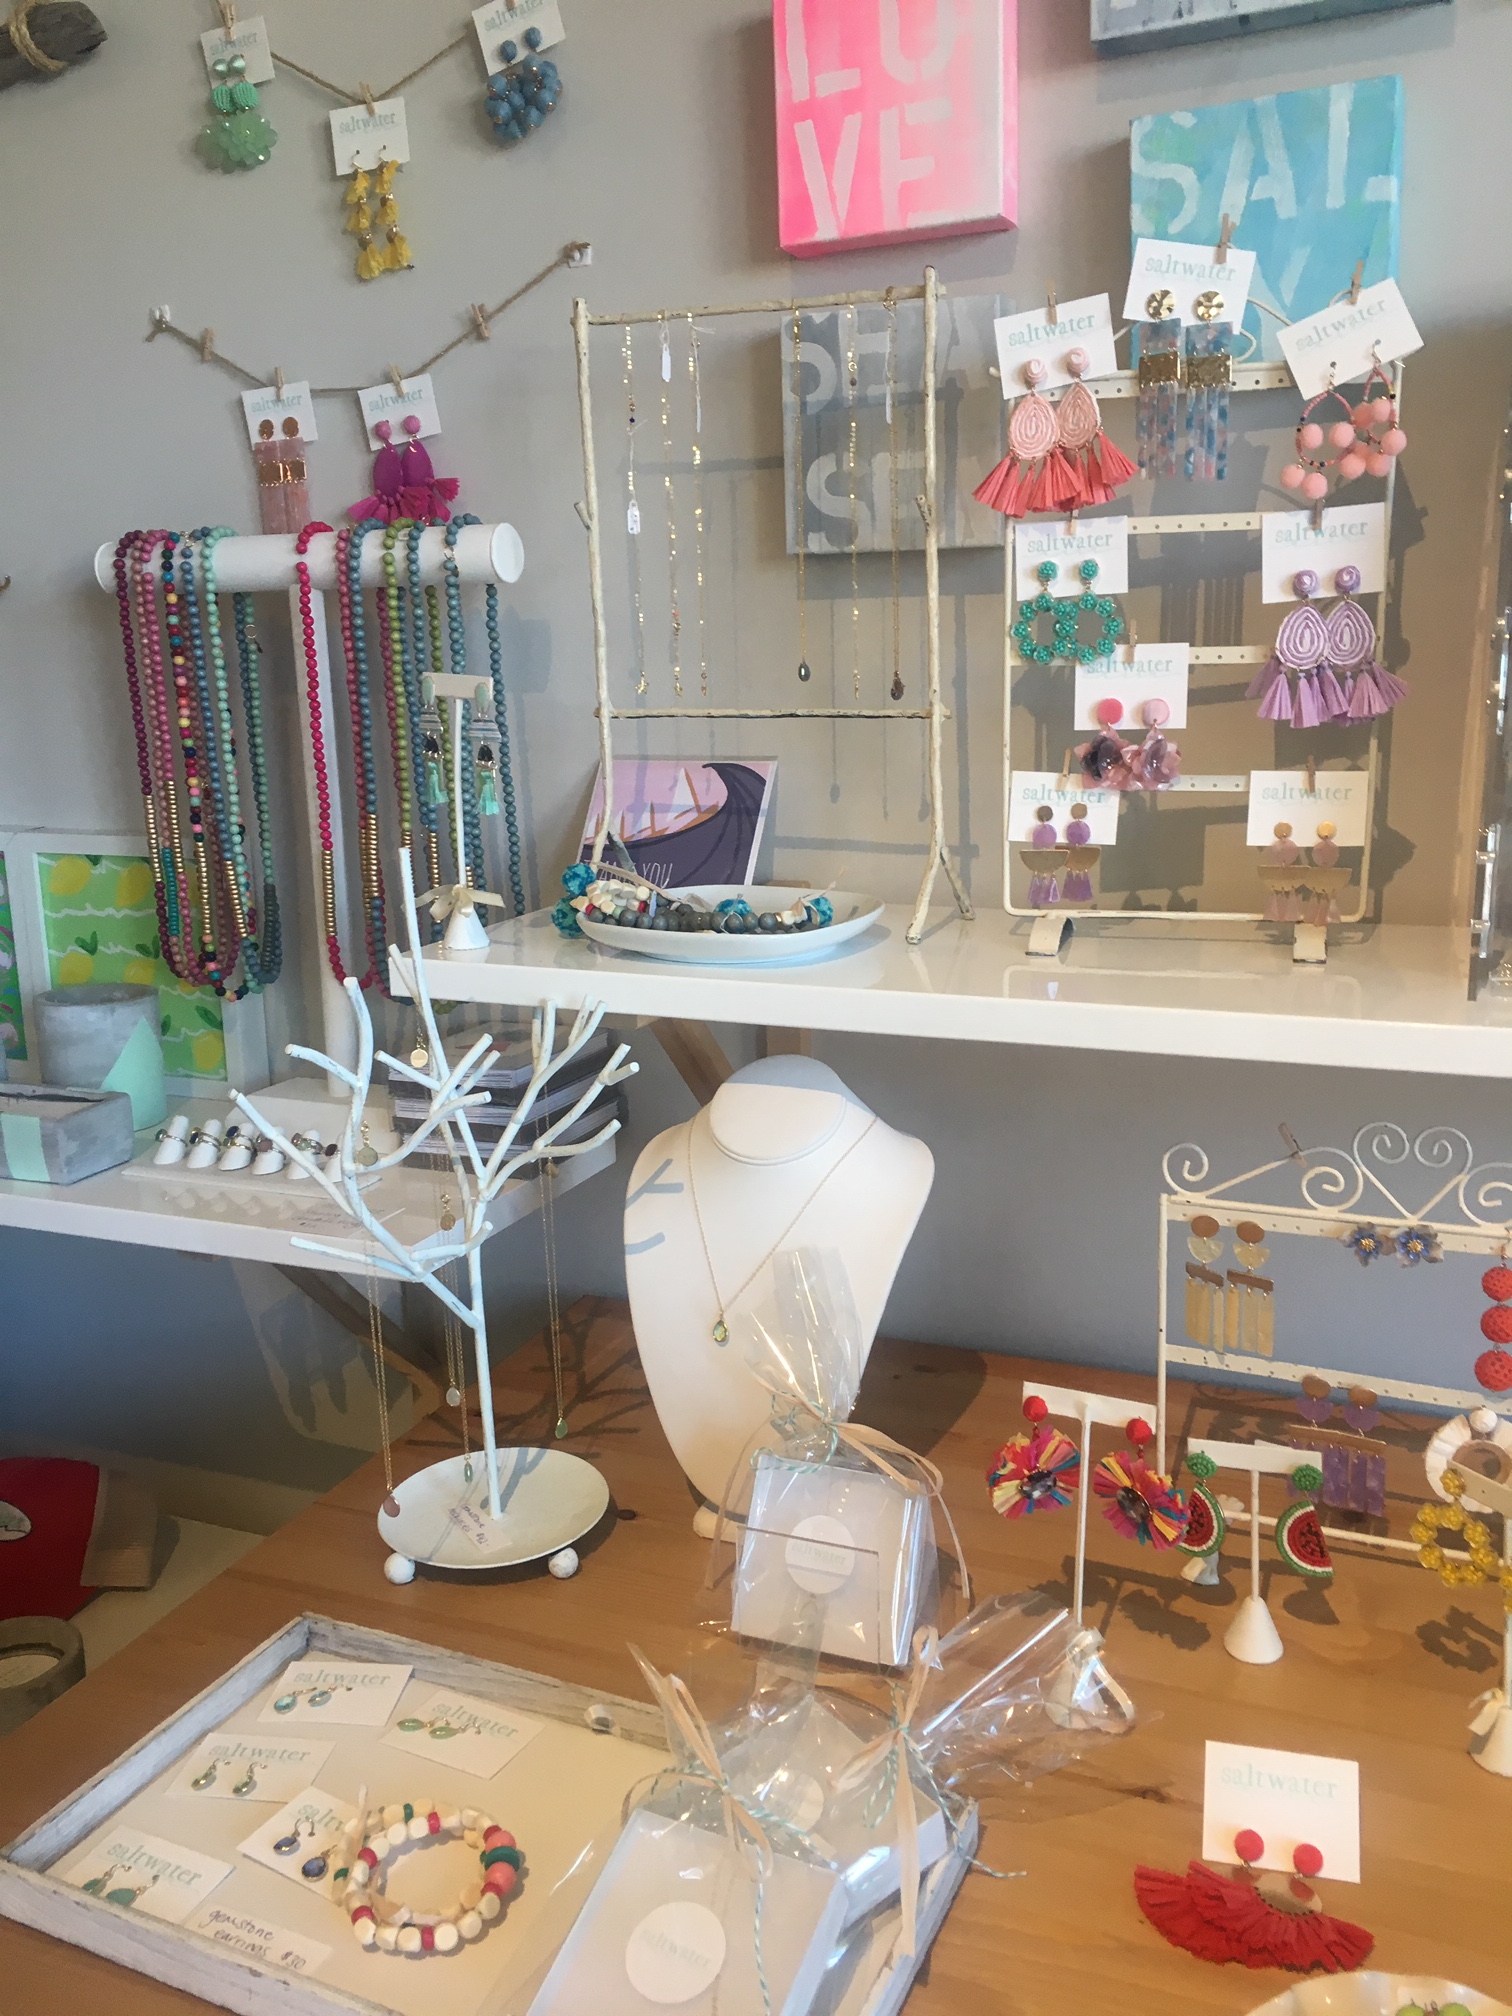 an example of Visual Merchandising with jewelry